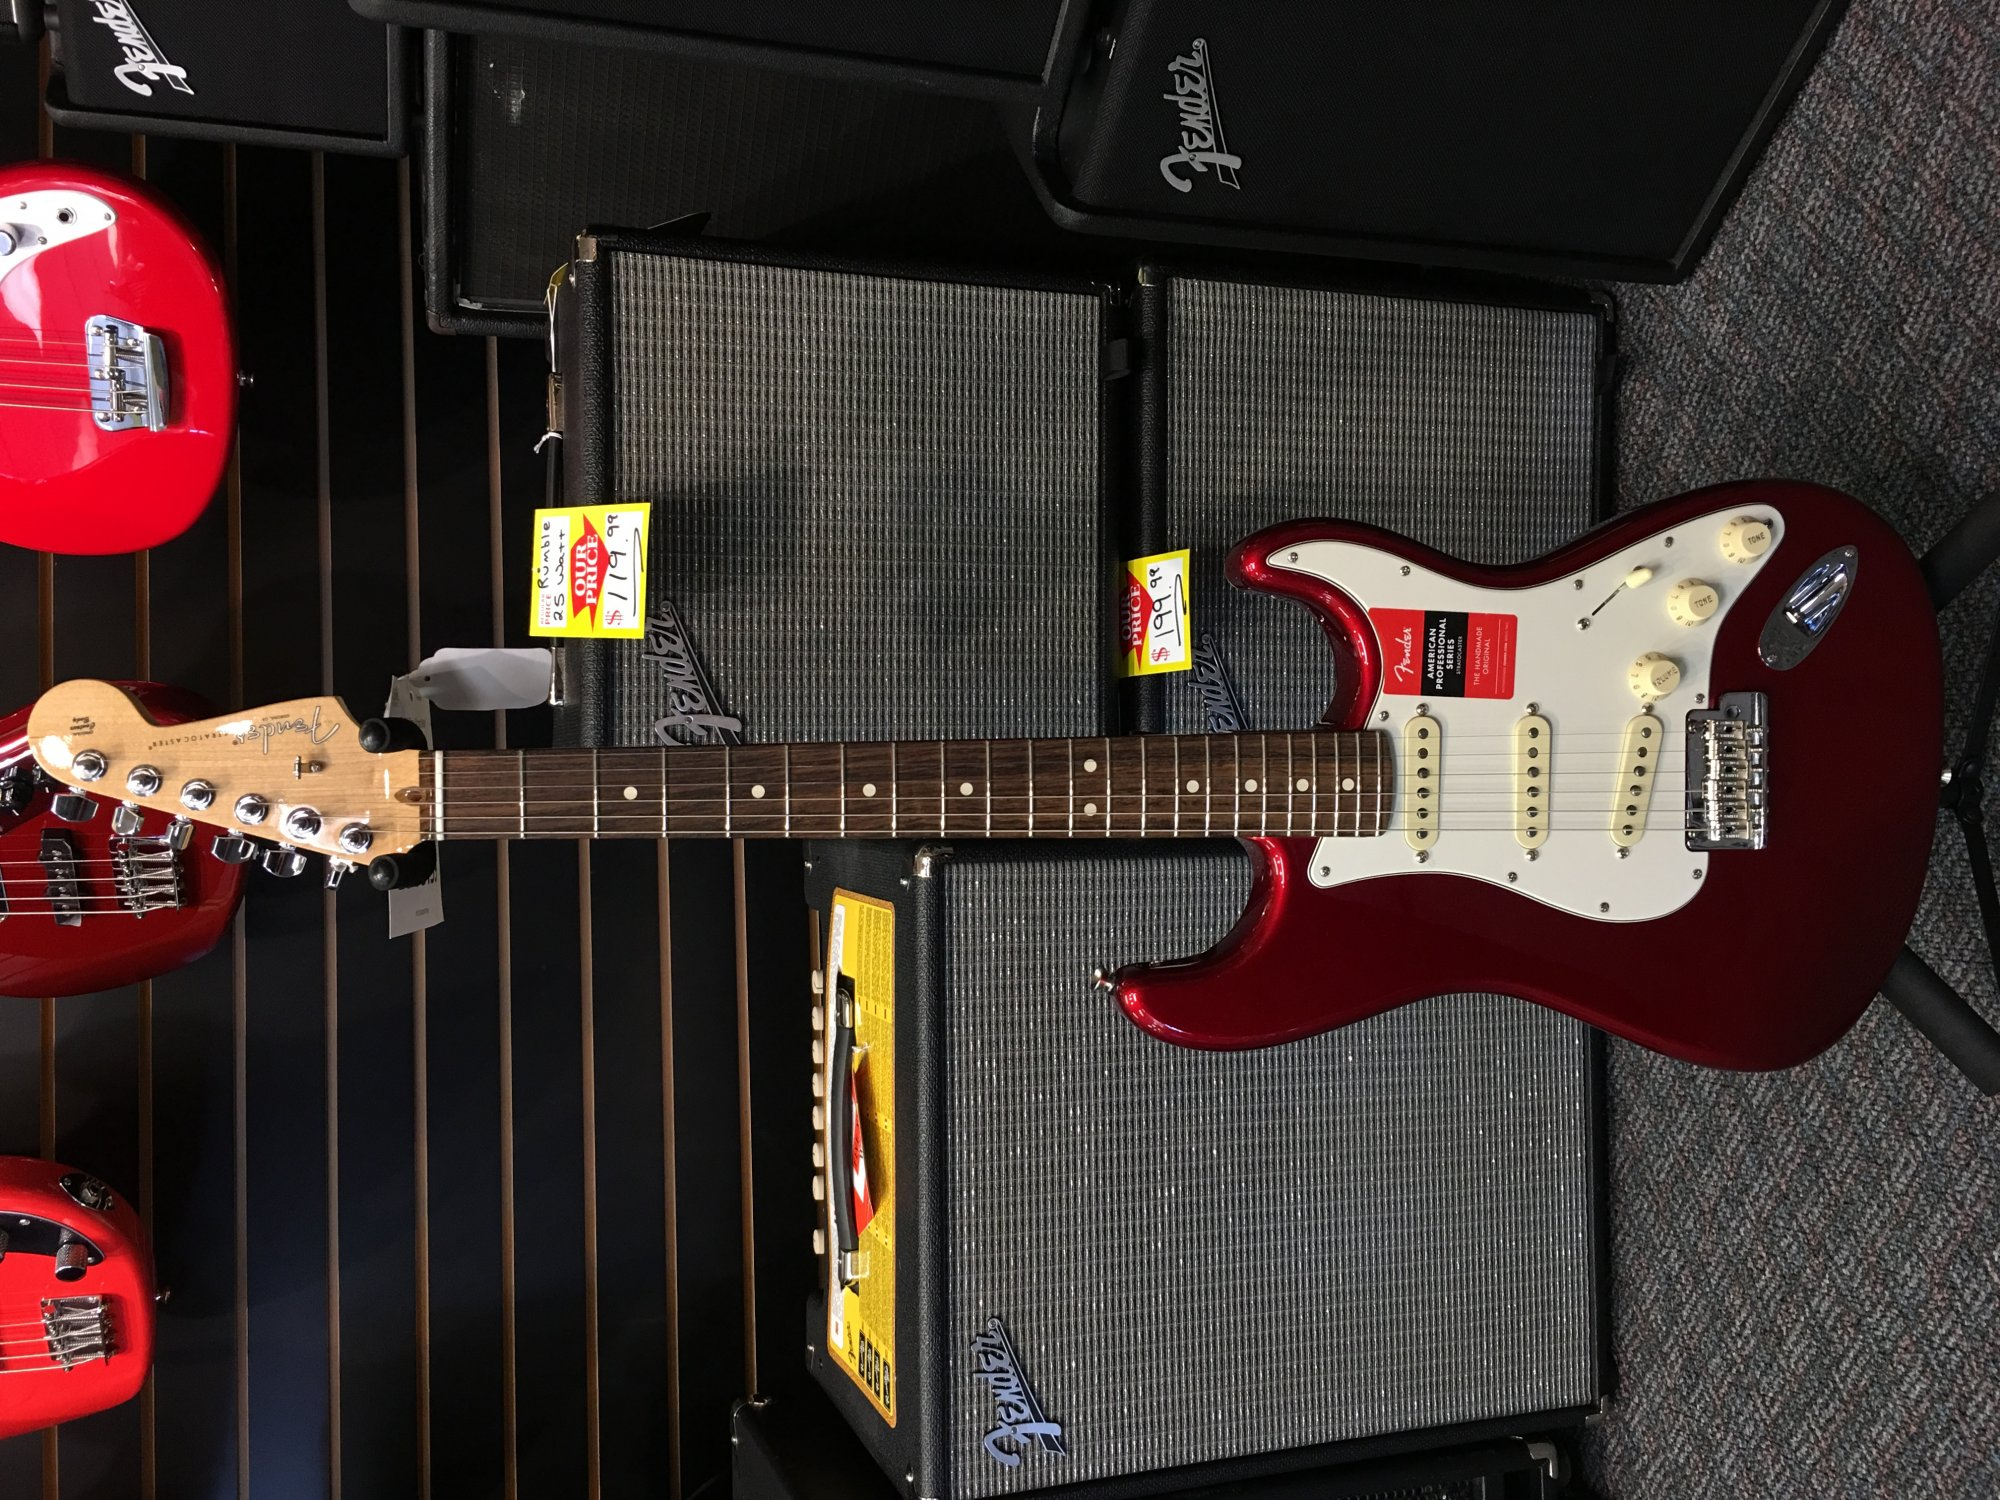 Fender Stratocaster Professional Candy Apple Red Rosewood Fingerboard